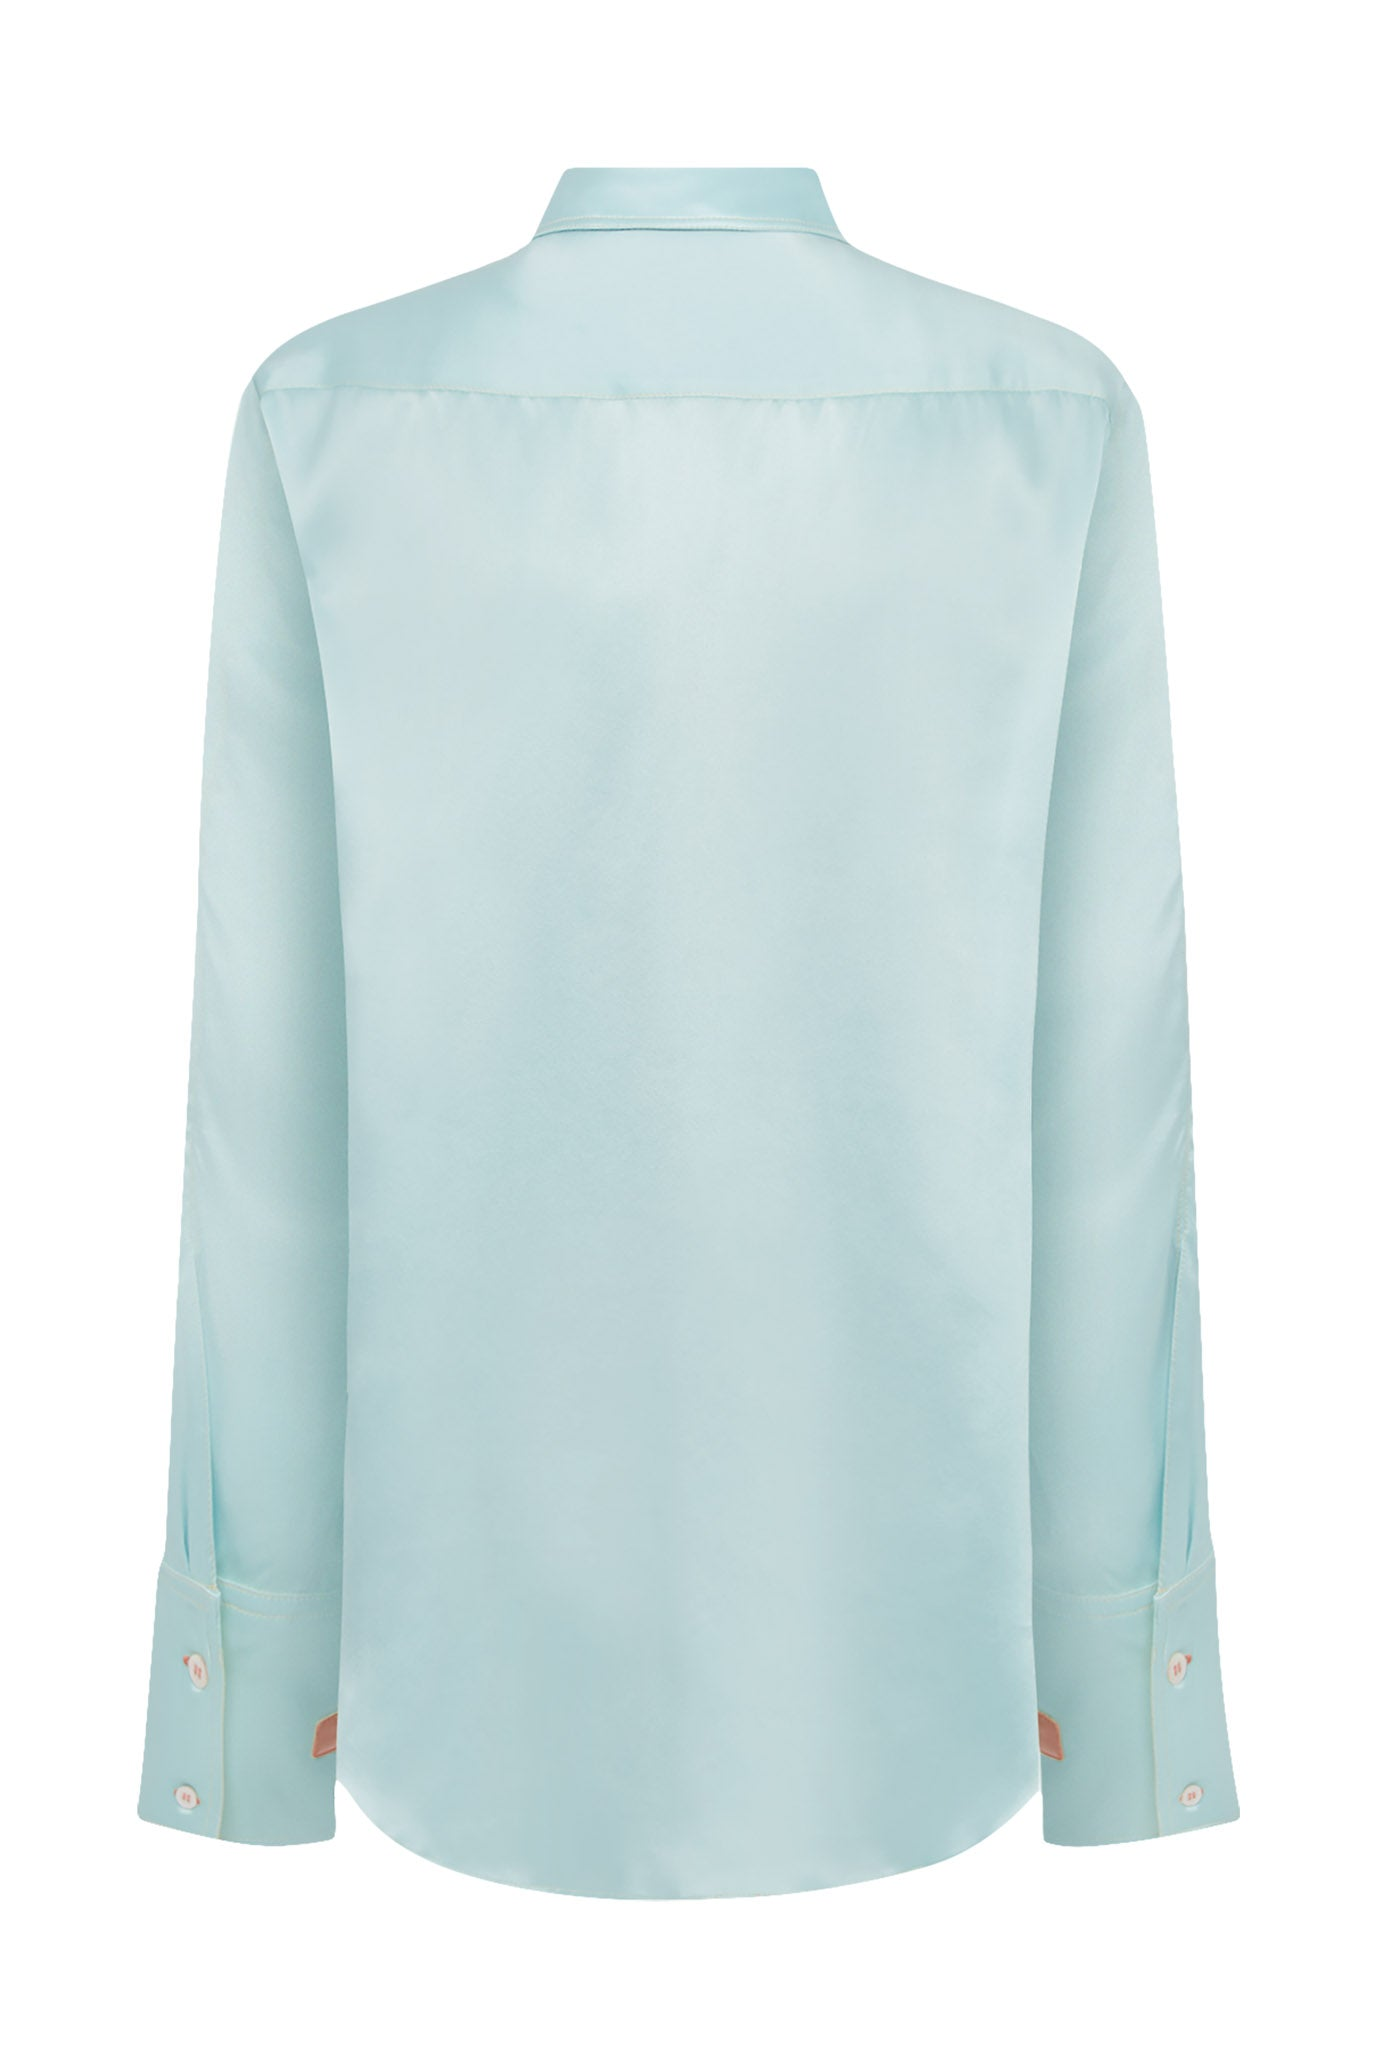 The Oversized Shirt - Spearmint & Dusky Pink Silk - SERENA BUTE